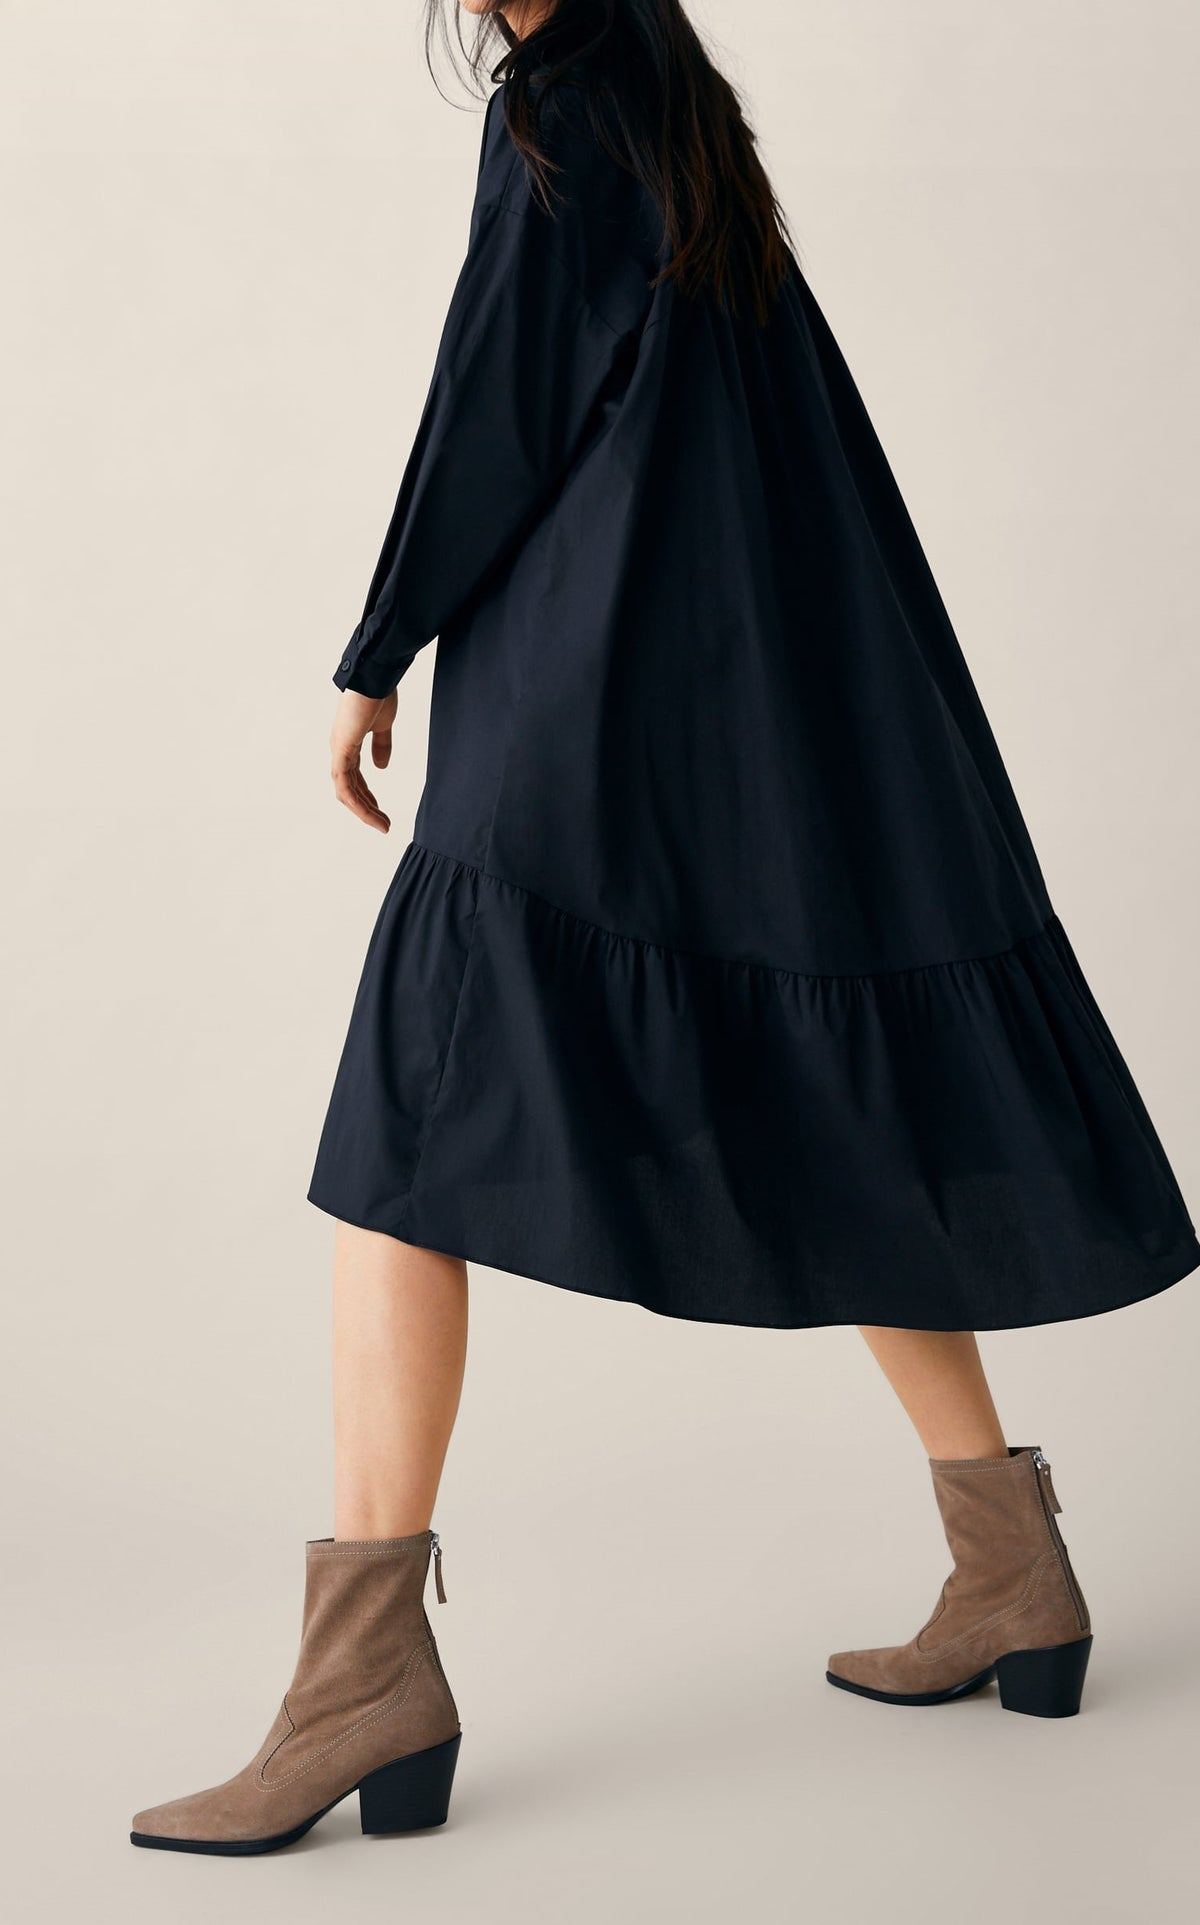 LONG POPLIN DRESS / Asymmetric Hem with Ruffle Trim Long Sleeve Slot Collar